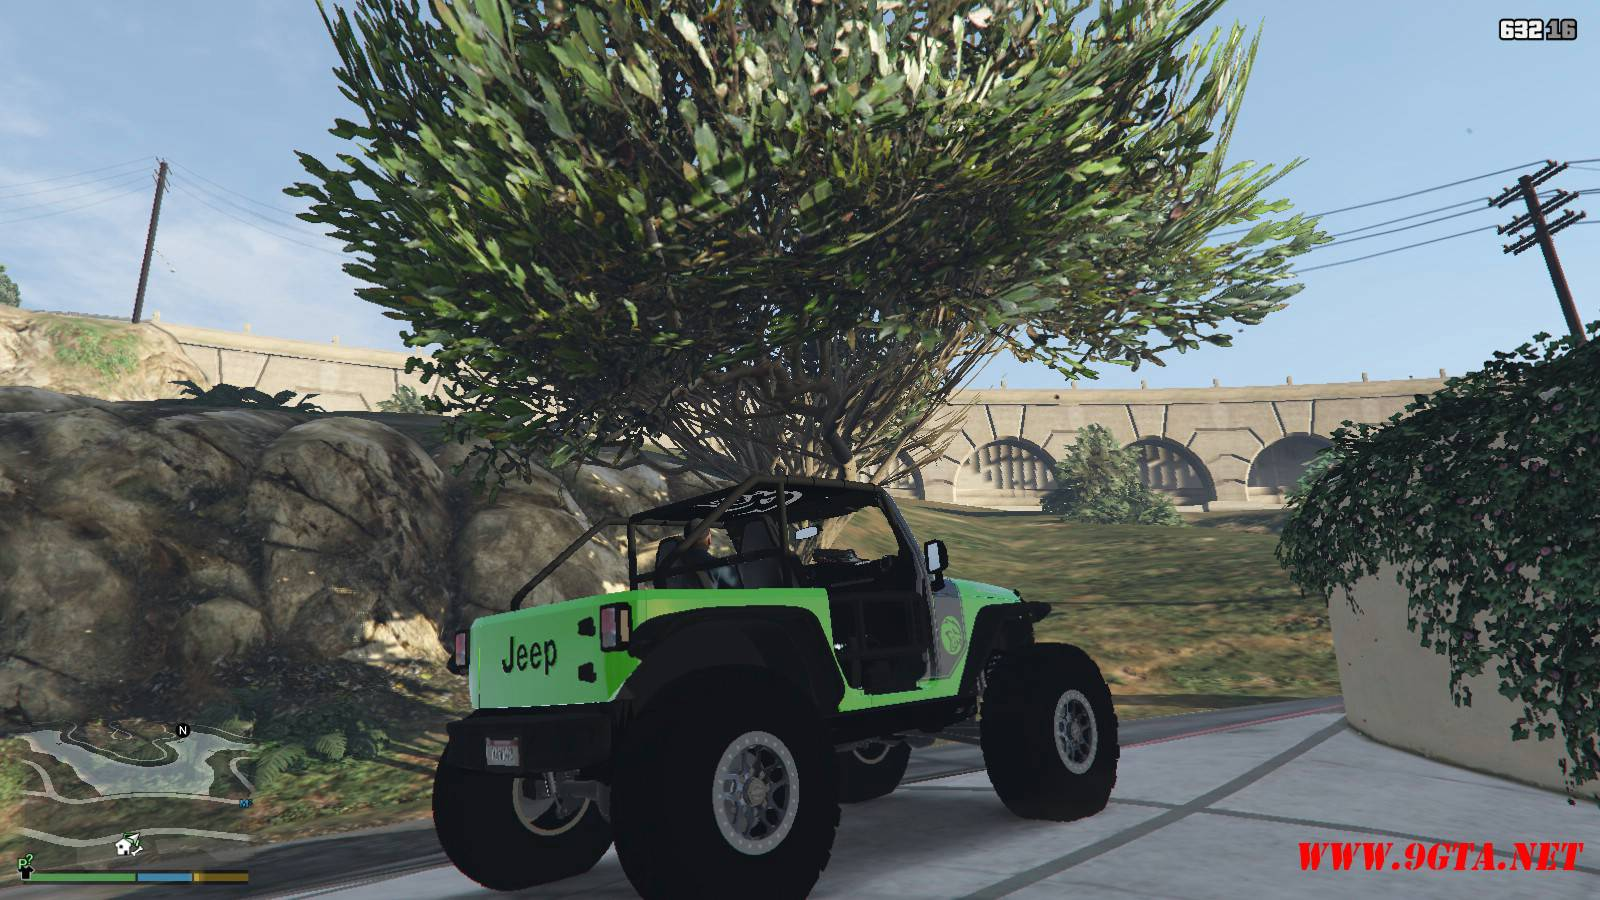 Jeep Trailcat Concept v2 Mod For GTA5 (10)